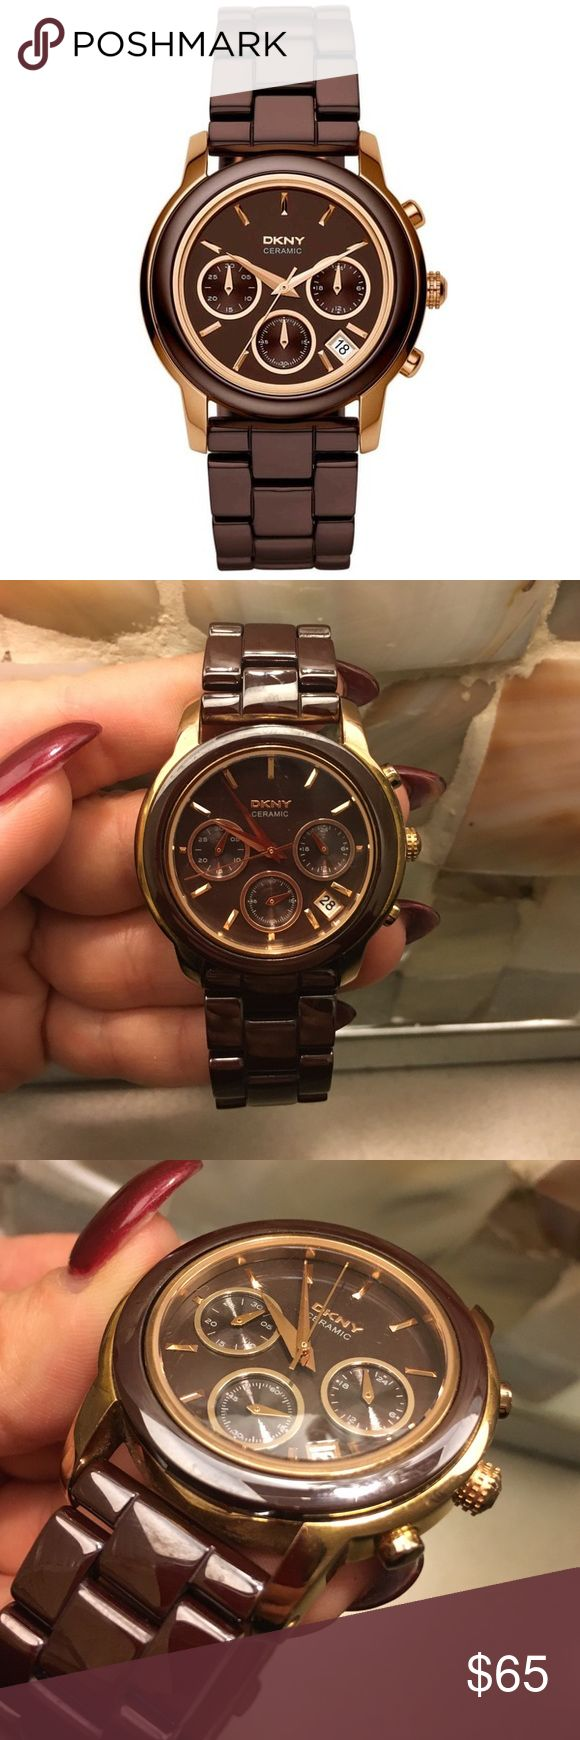 DKNY Women's Brown/ Rose-gold Ceramic Watch ⌚️ DKNY Women's Brown/ Rose-gold Ceramic Watch | Battery Working | No Box | No Extra links | minor marks and scuffs | good condition | no longer sold online DKNY Accessories Watches